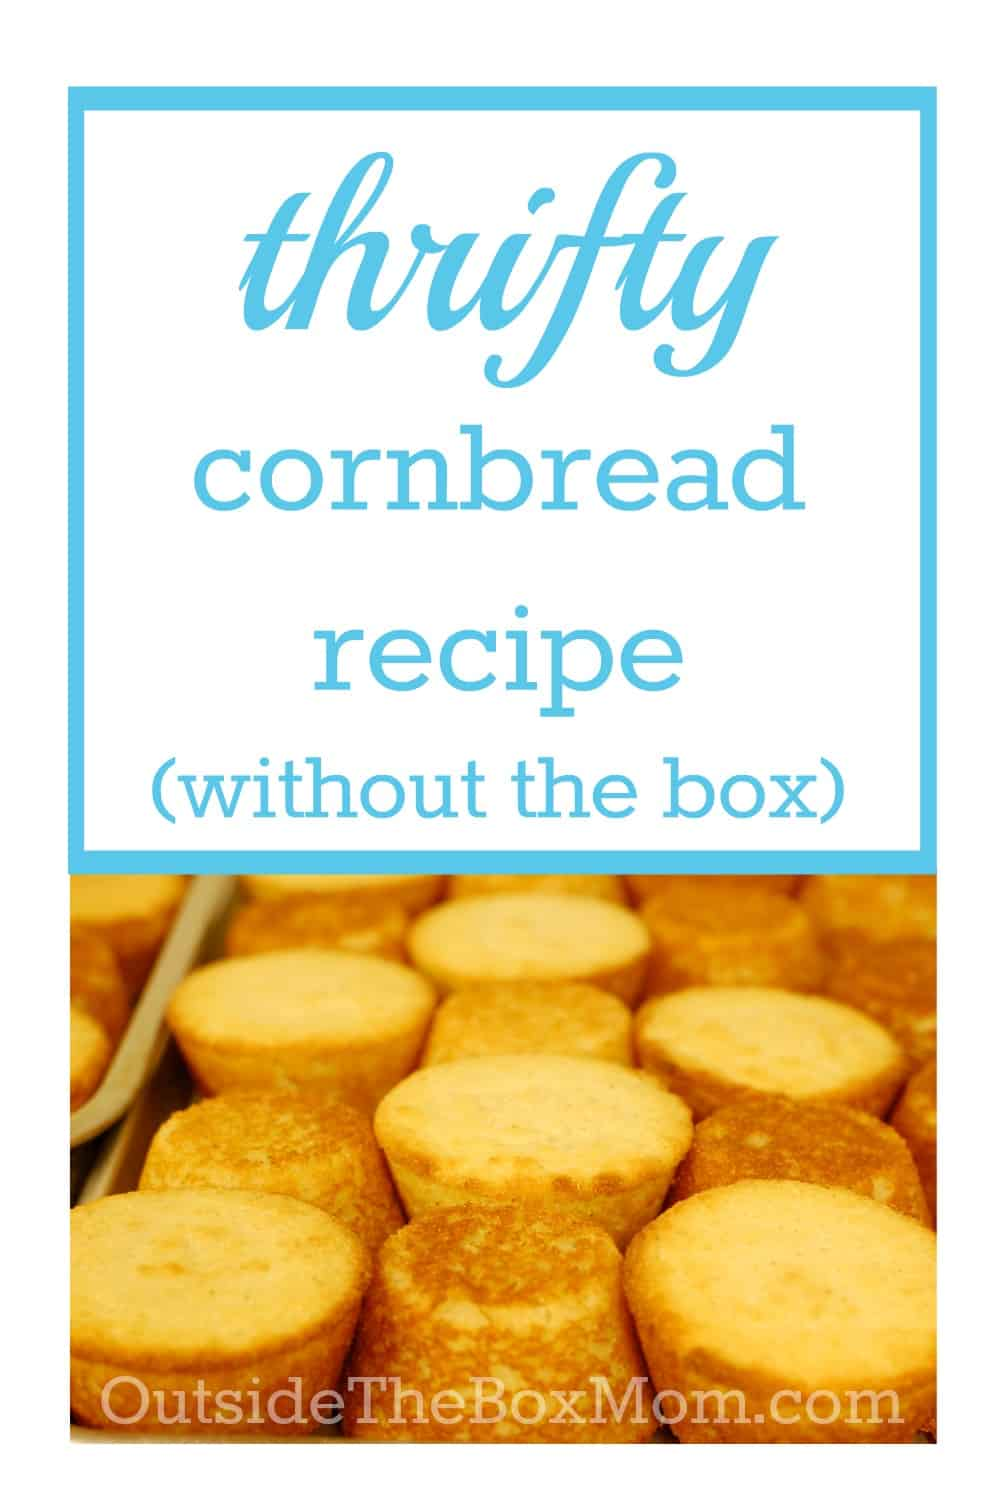 Looking for an easy, thrifty cornbread recipe that's better than the box?  | OutsideTheBoxMom.com